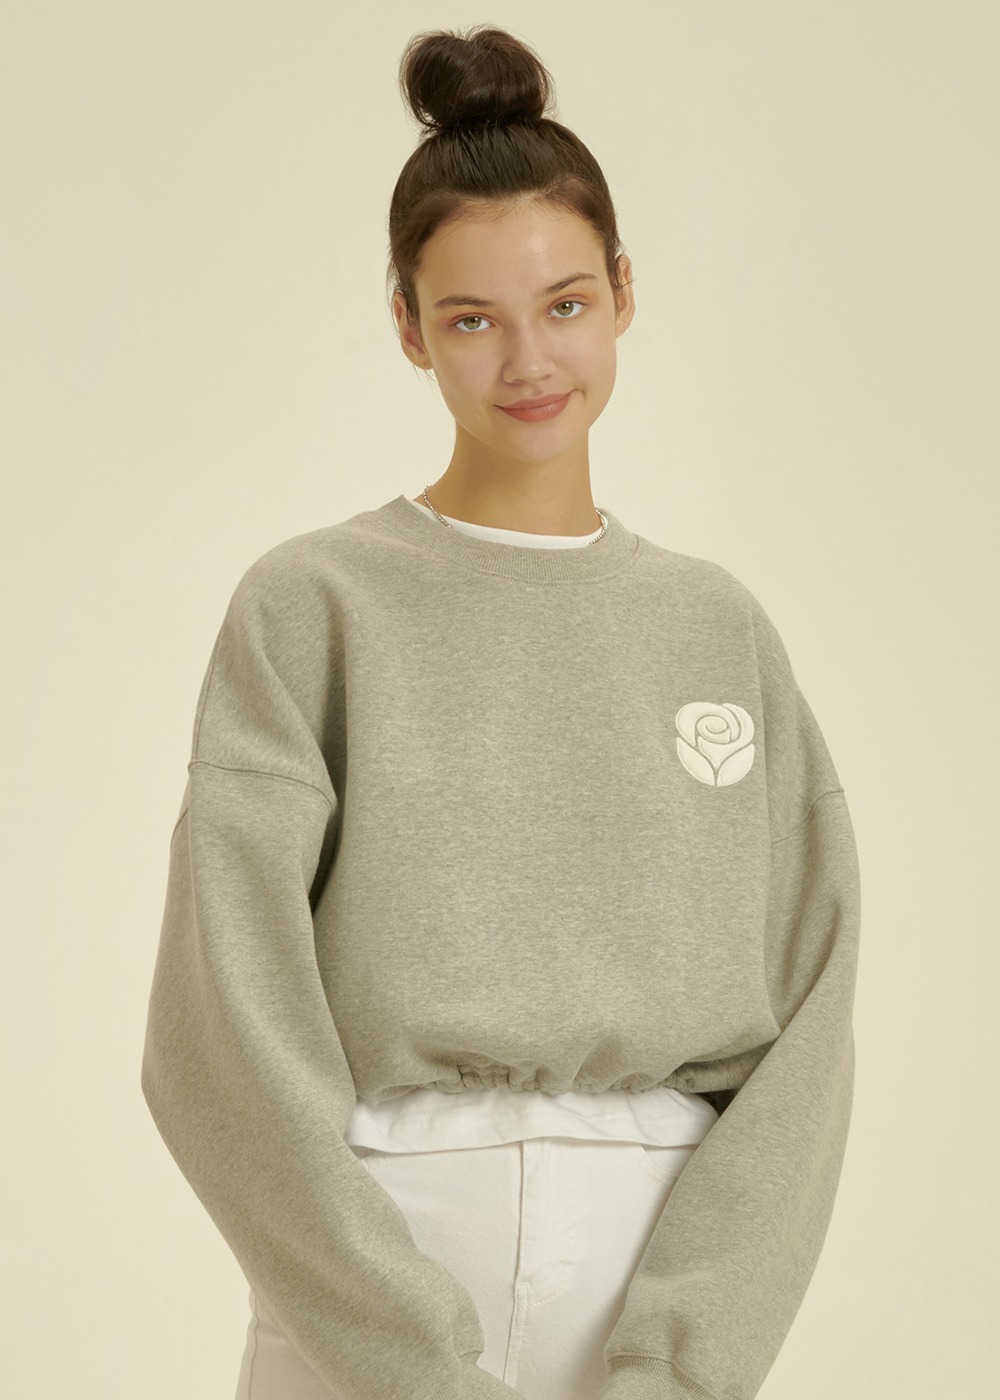 Essential Rose Crop Sweatshirt [MELANGE GREY]Essential Rose Crop Sweatshirt [MELANGE GREY]자체브랜드